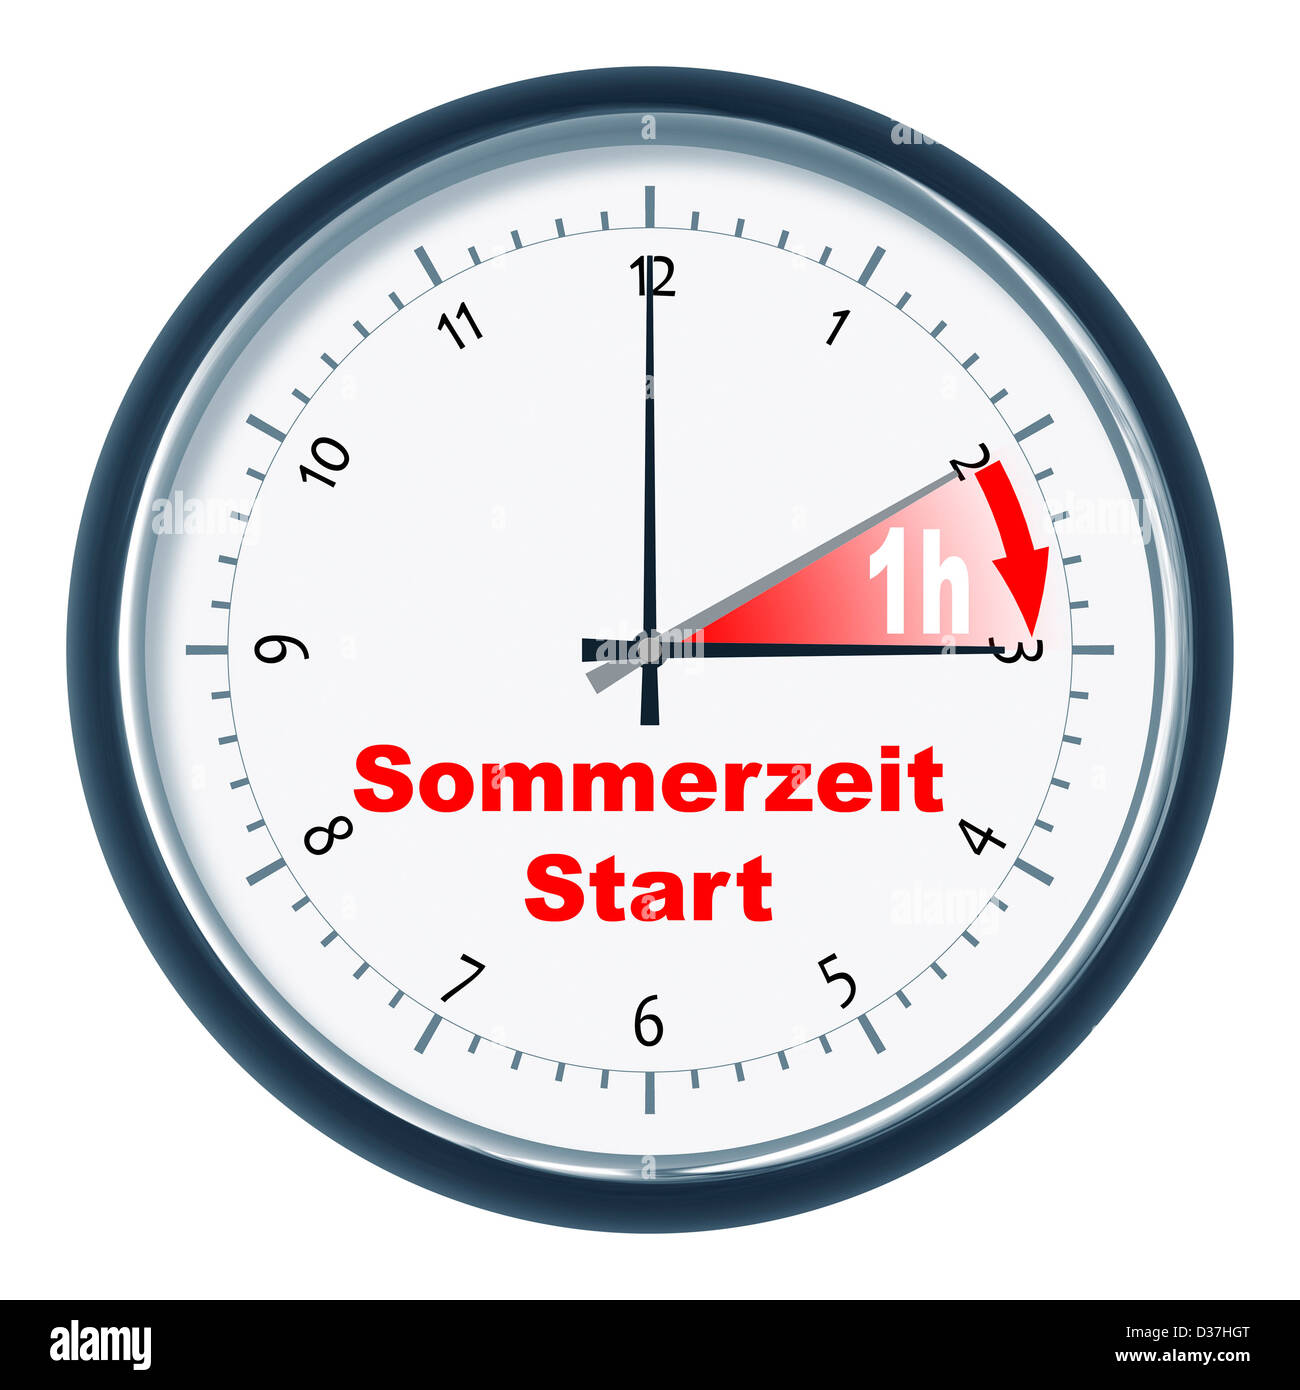 An image of a nice clock 'Sommerzeit Start' - Stock Image